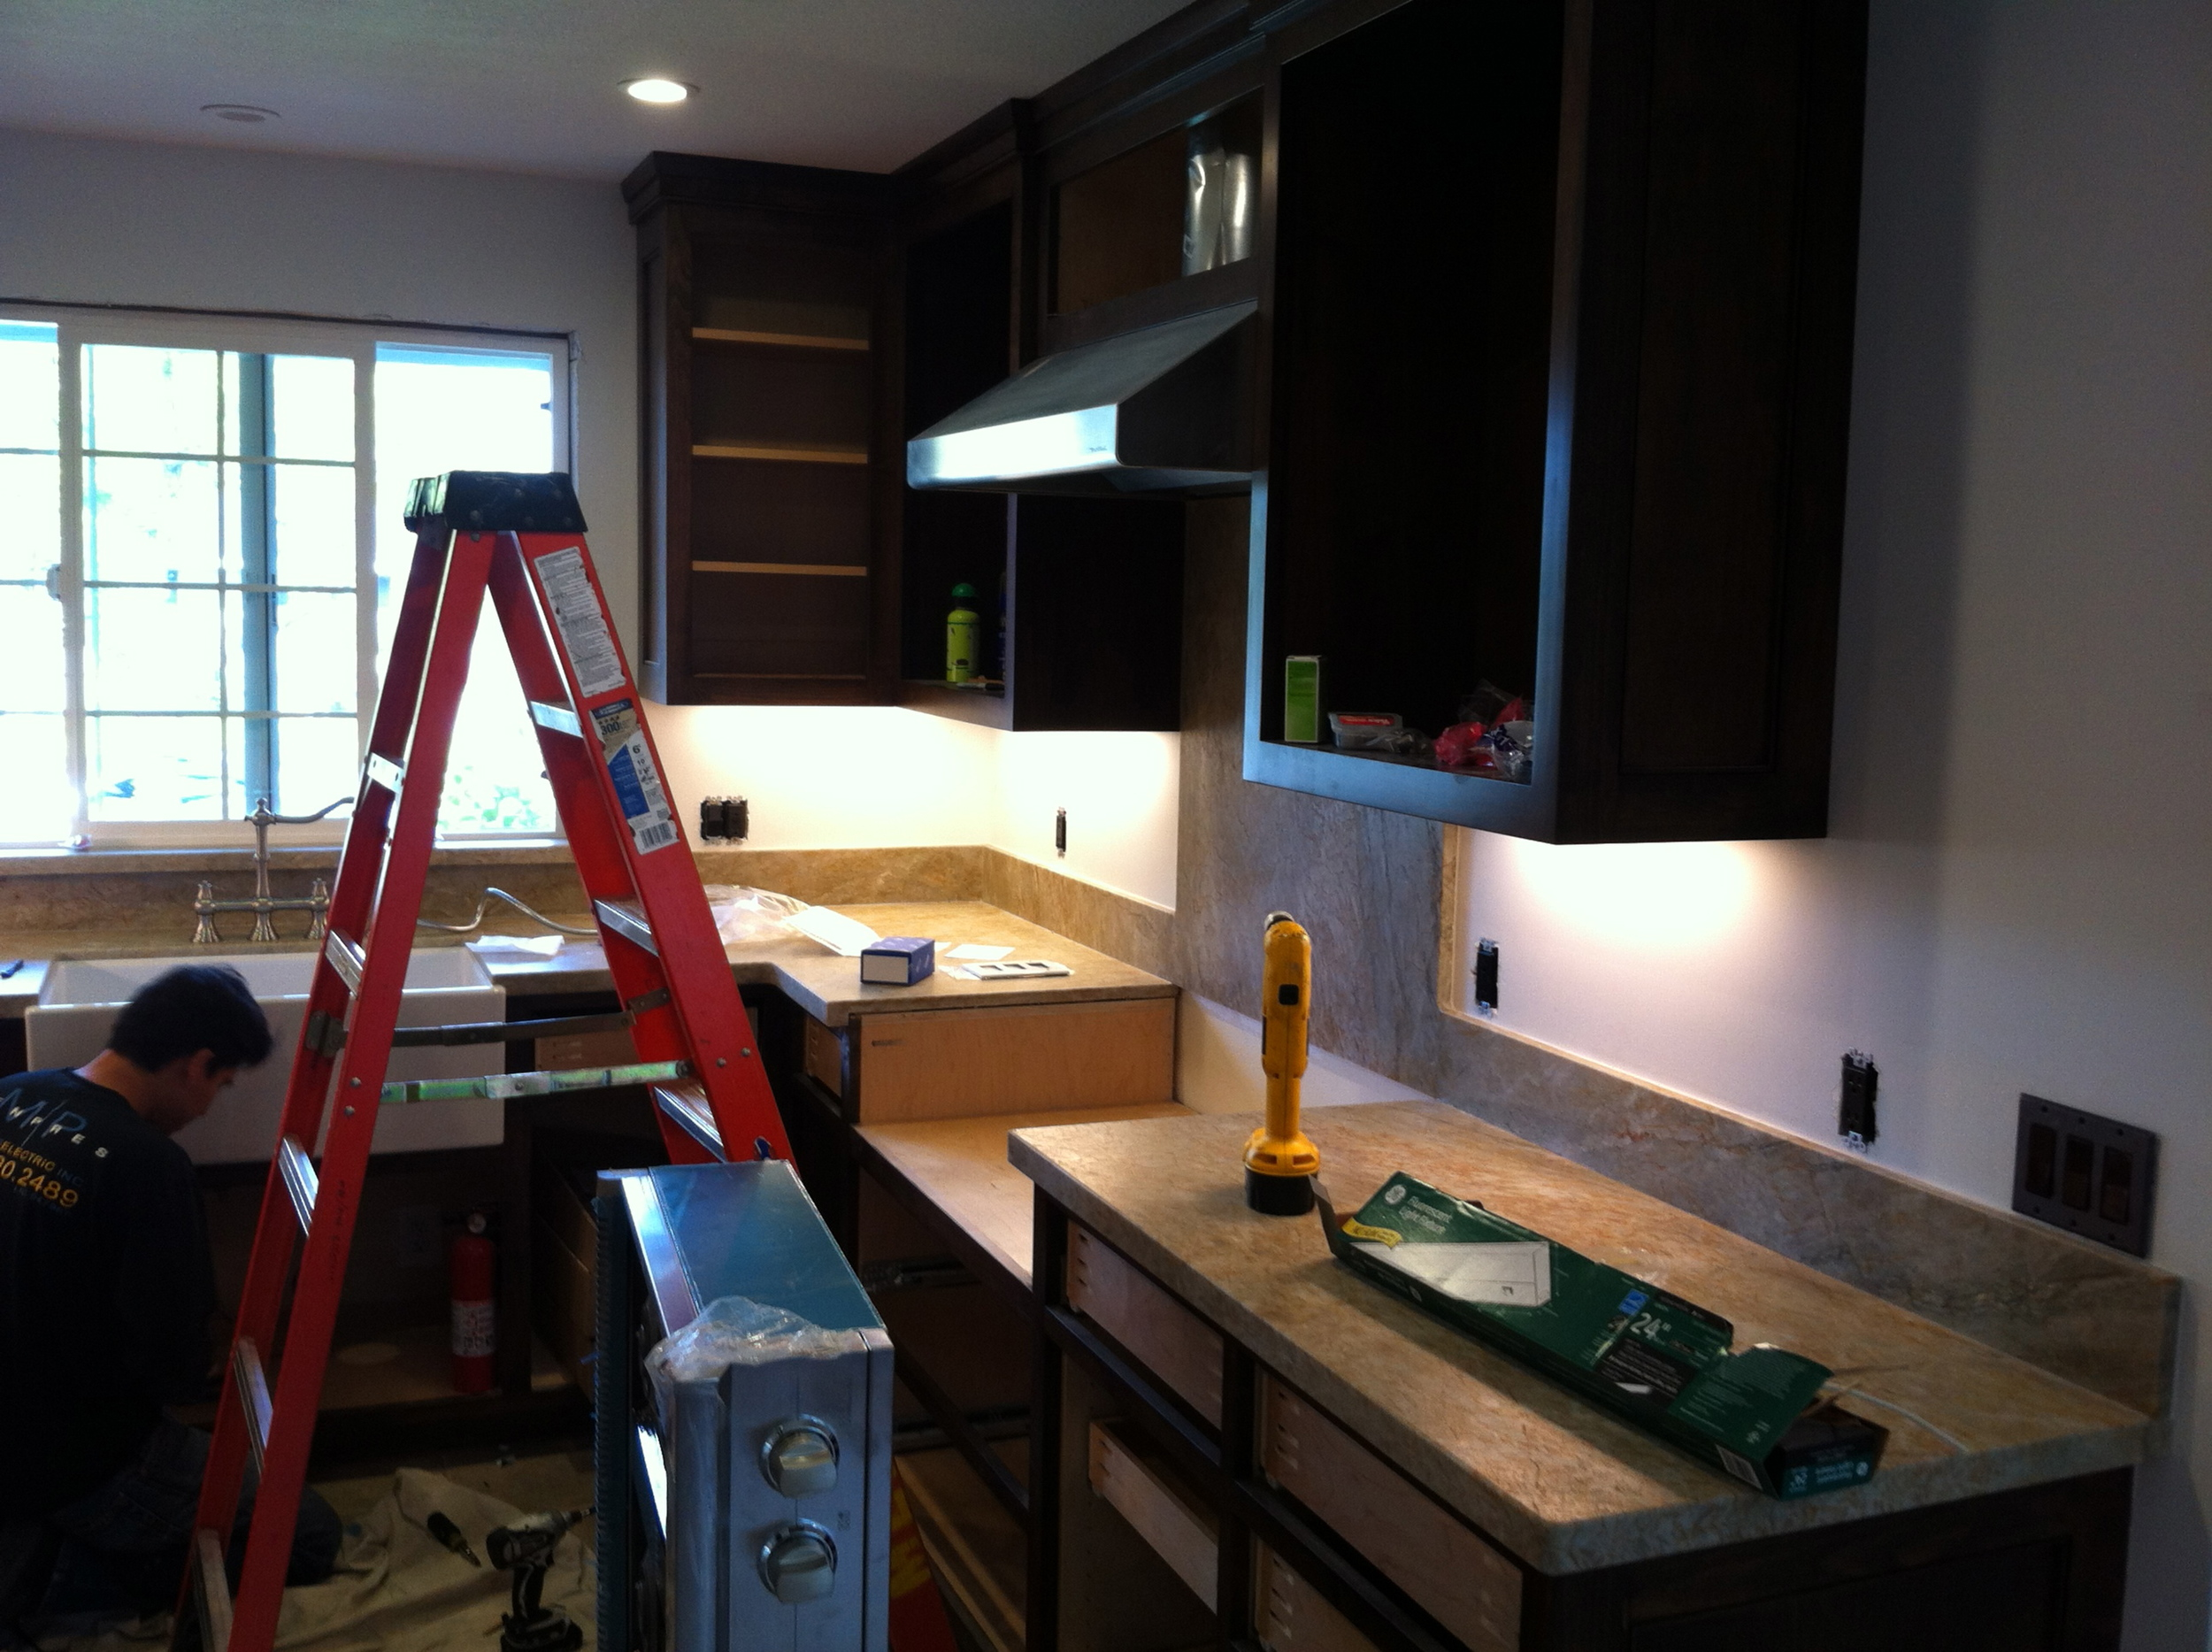 Remodel Update: Photos and Getting There